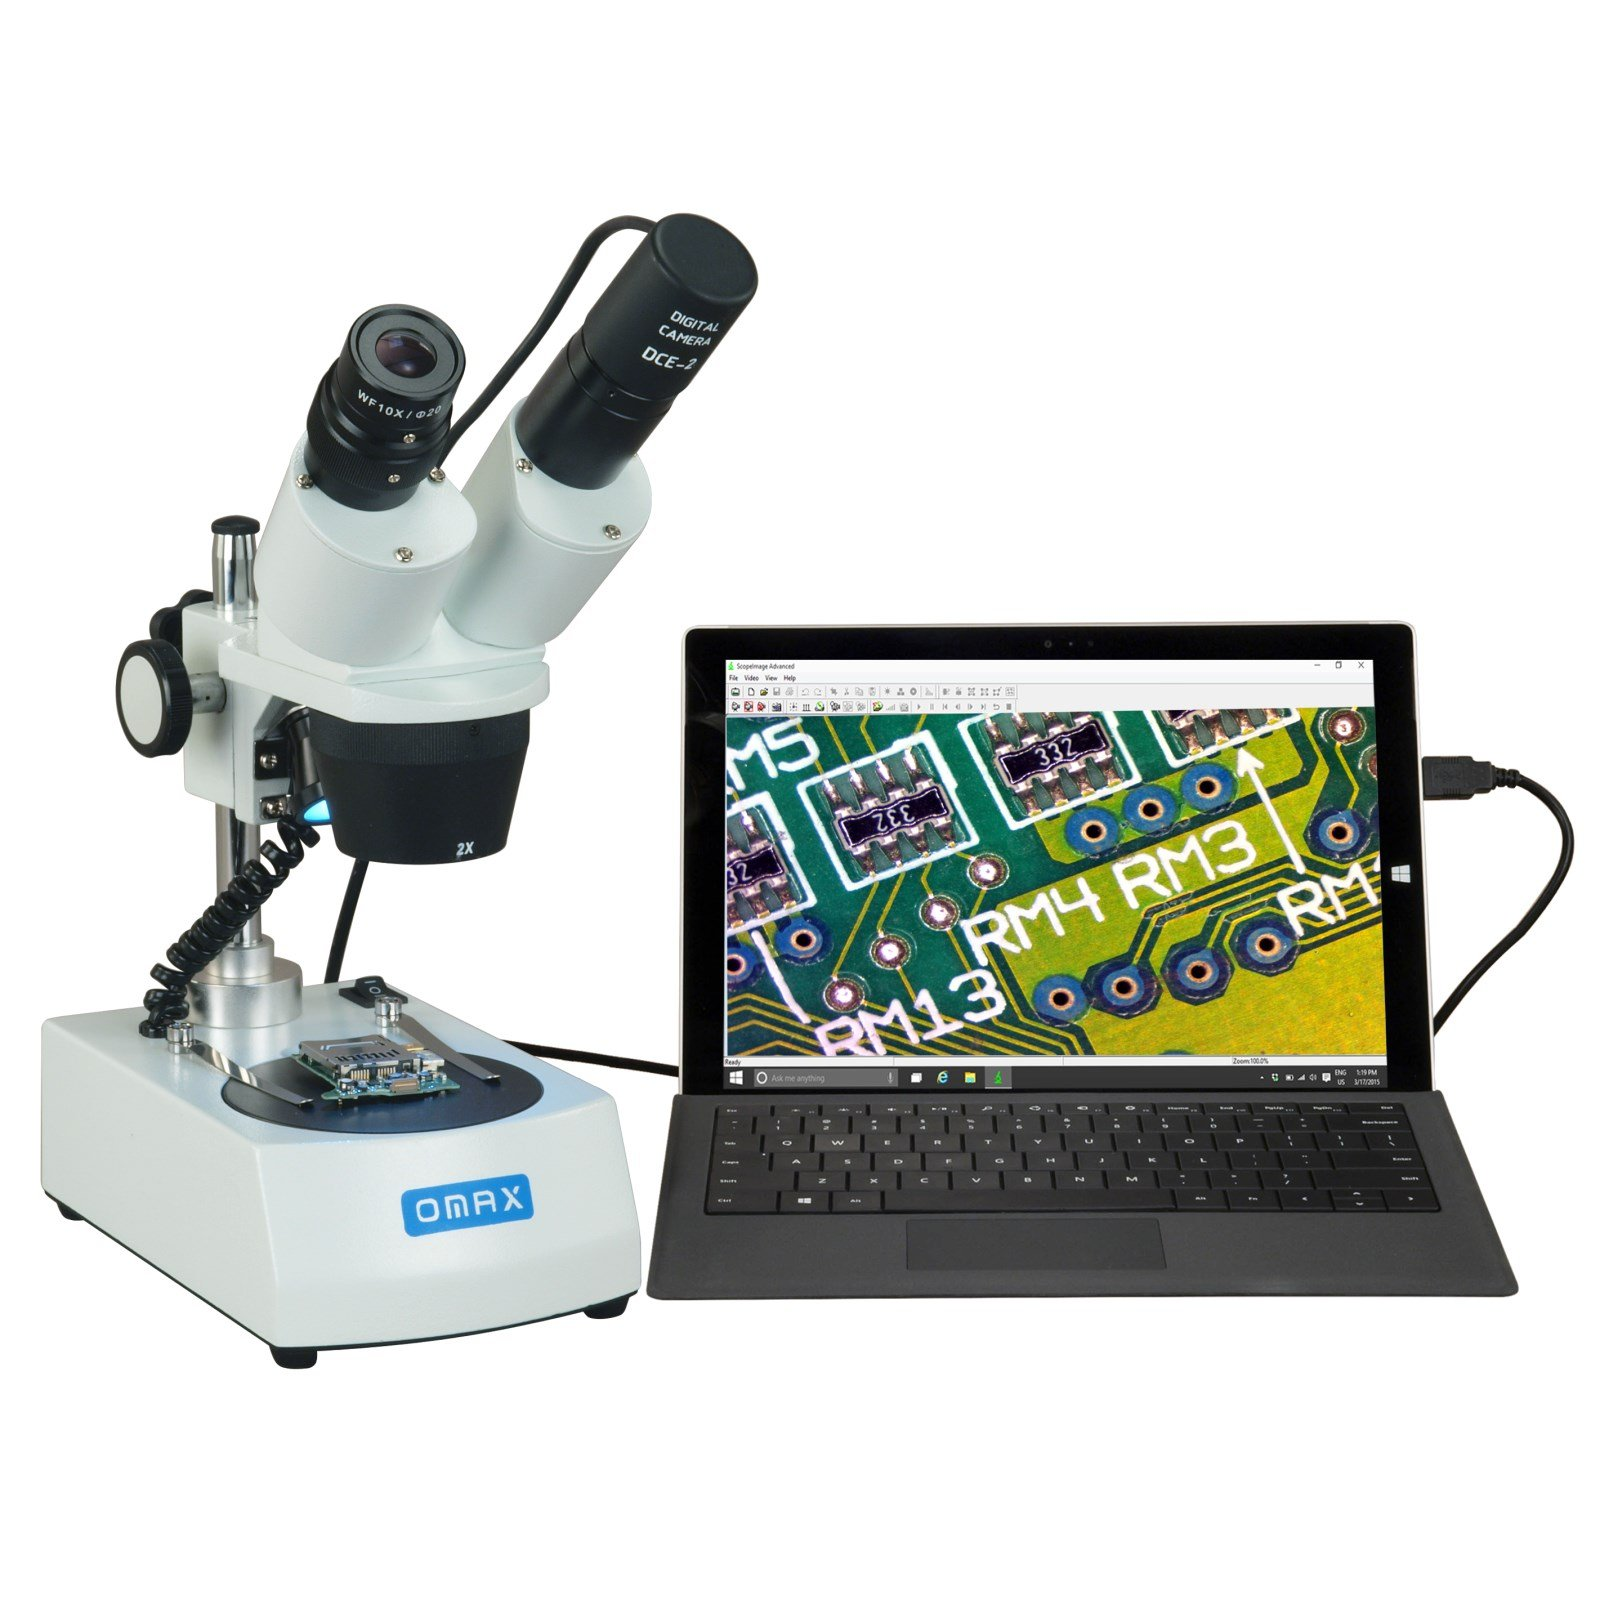 OMAX 20X-40X-80X Cordless Dual LED Lights Stereo Binocular Microscope with USB Digital Camera by OMAX